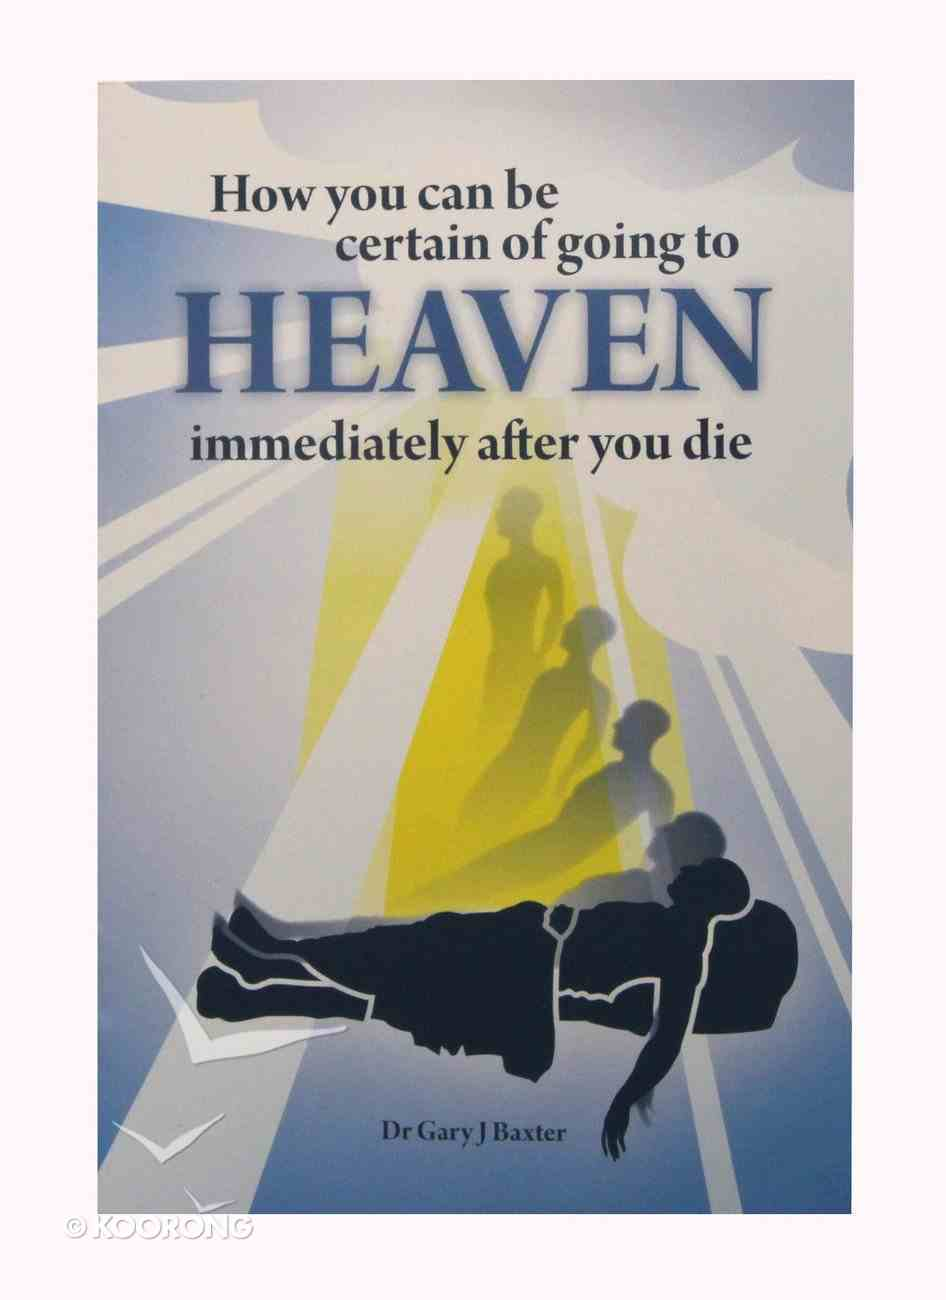 How You Can Be Certain of Going to Heaven Immediately After You Die? Booklet